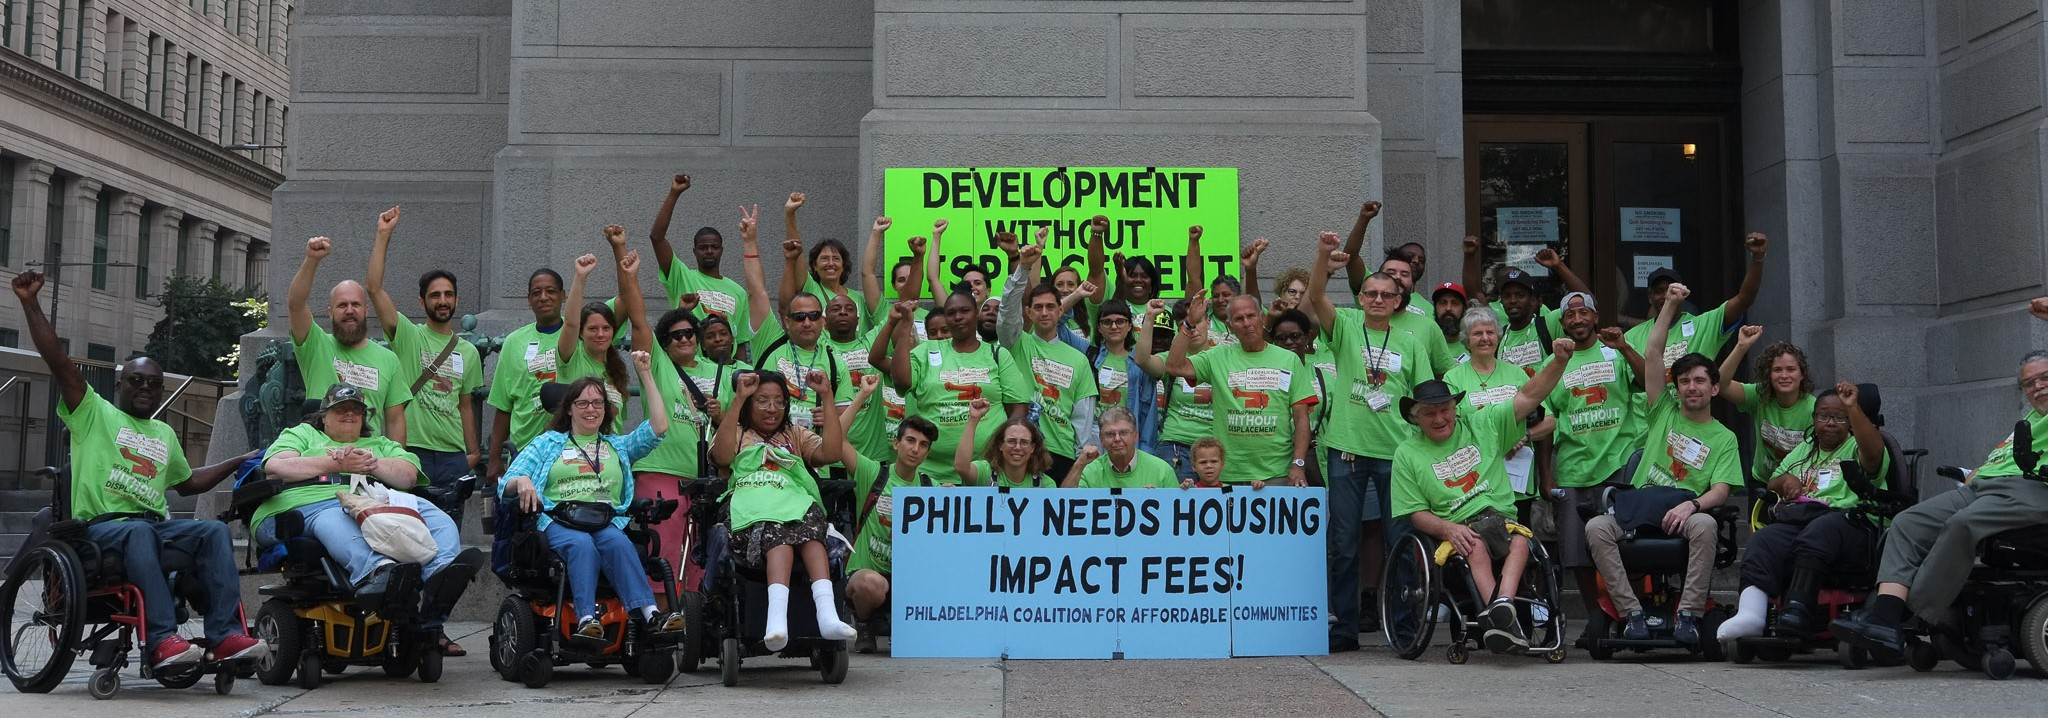 Development without Displacement Campaign Wins Millions for Affordable, Accessible Housing